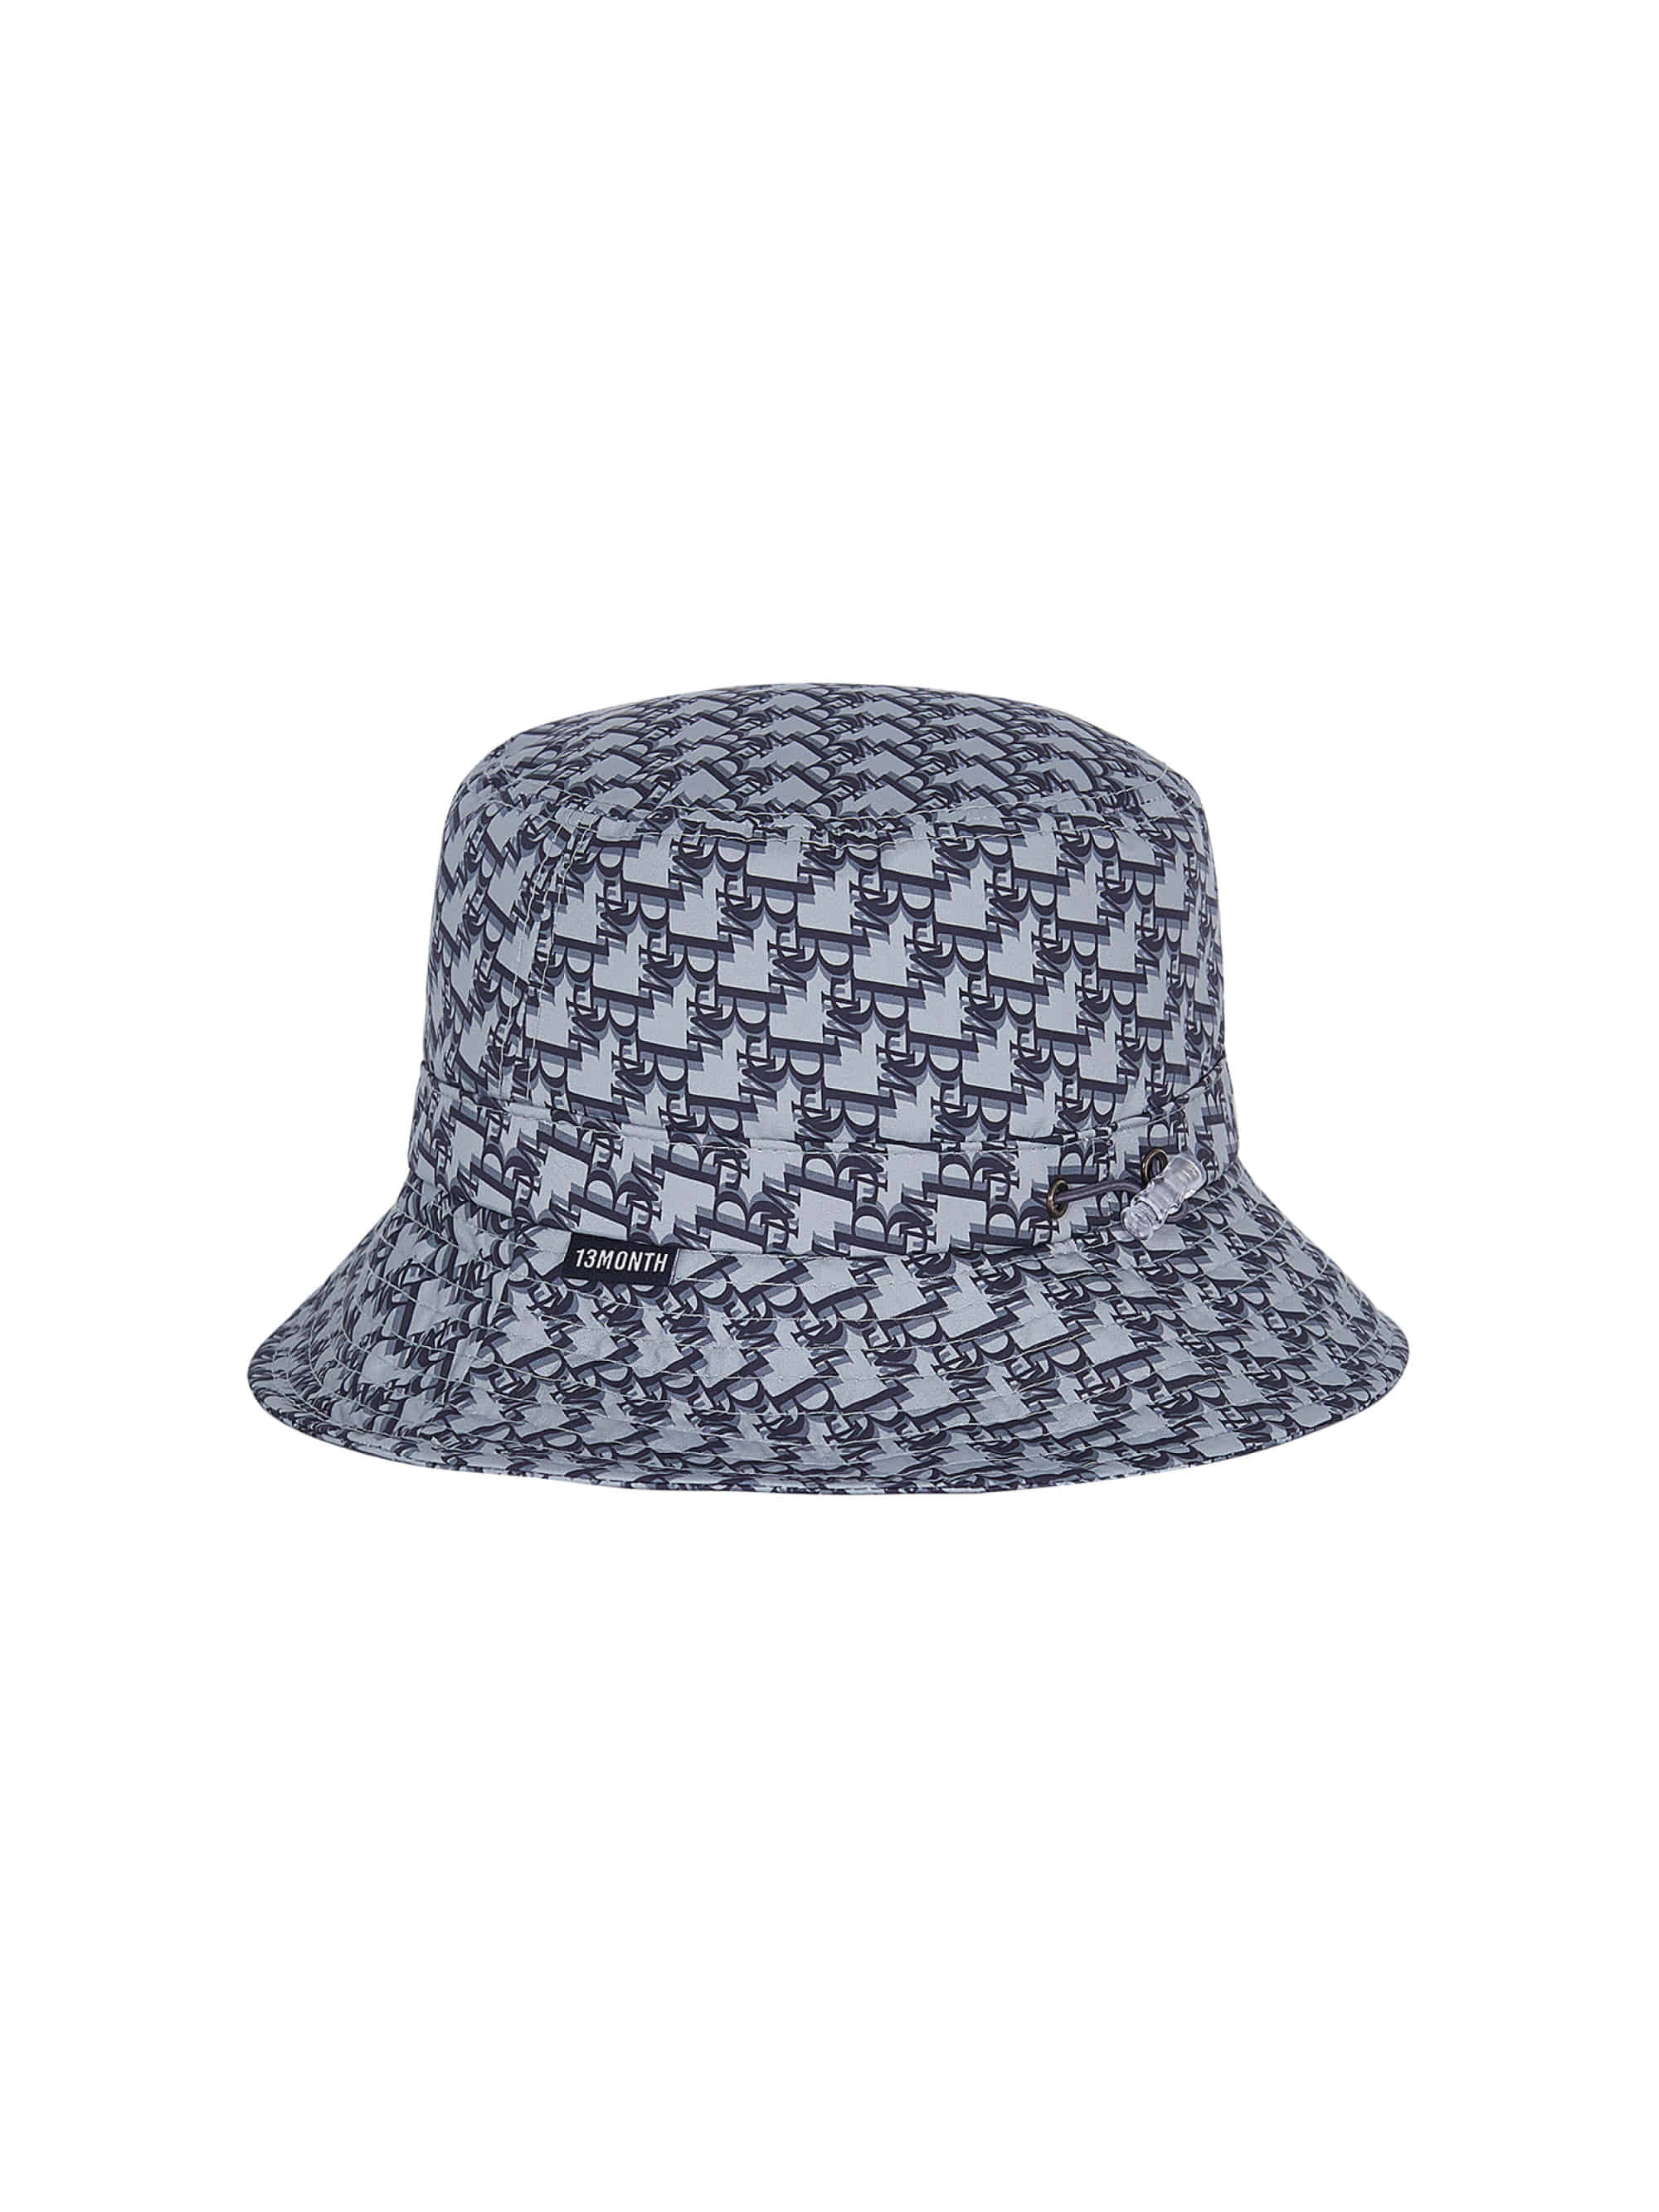 13M PATTERN BUCKET HAT (GRAY)